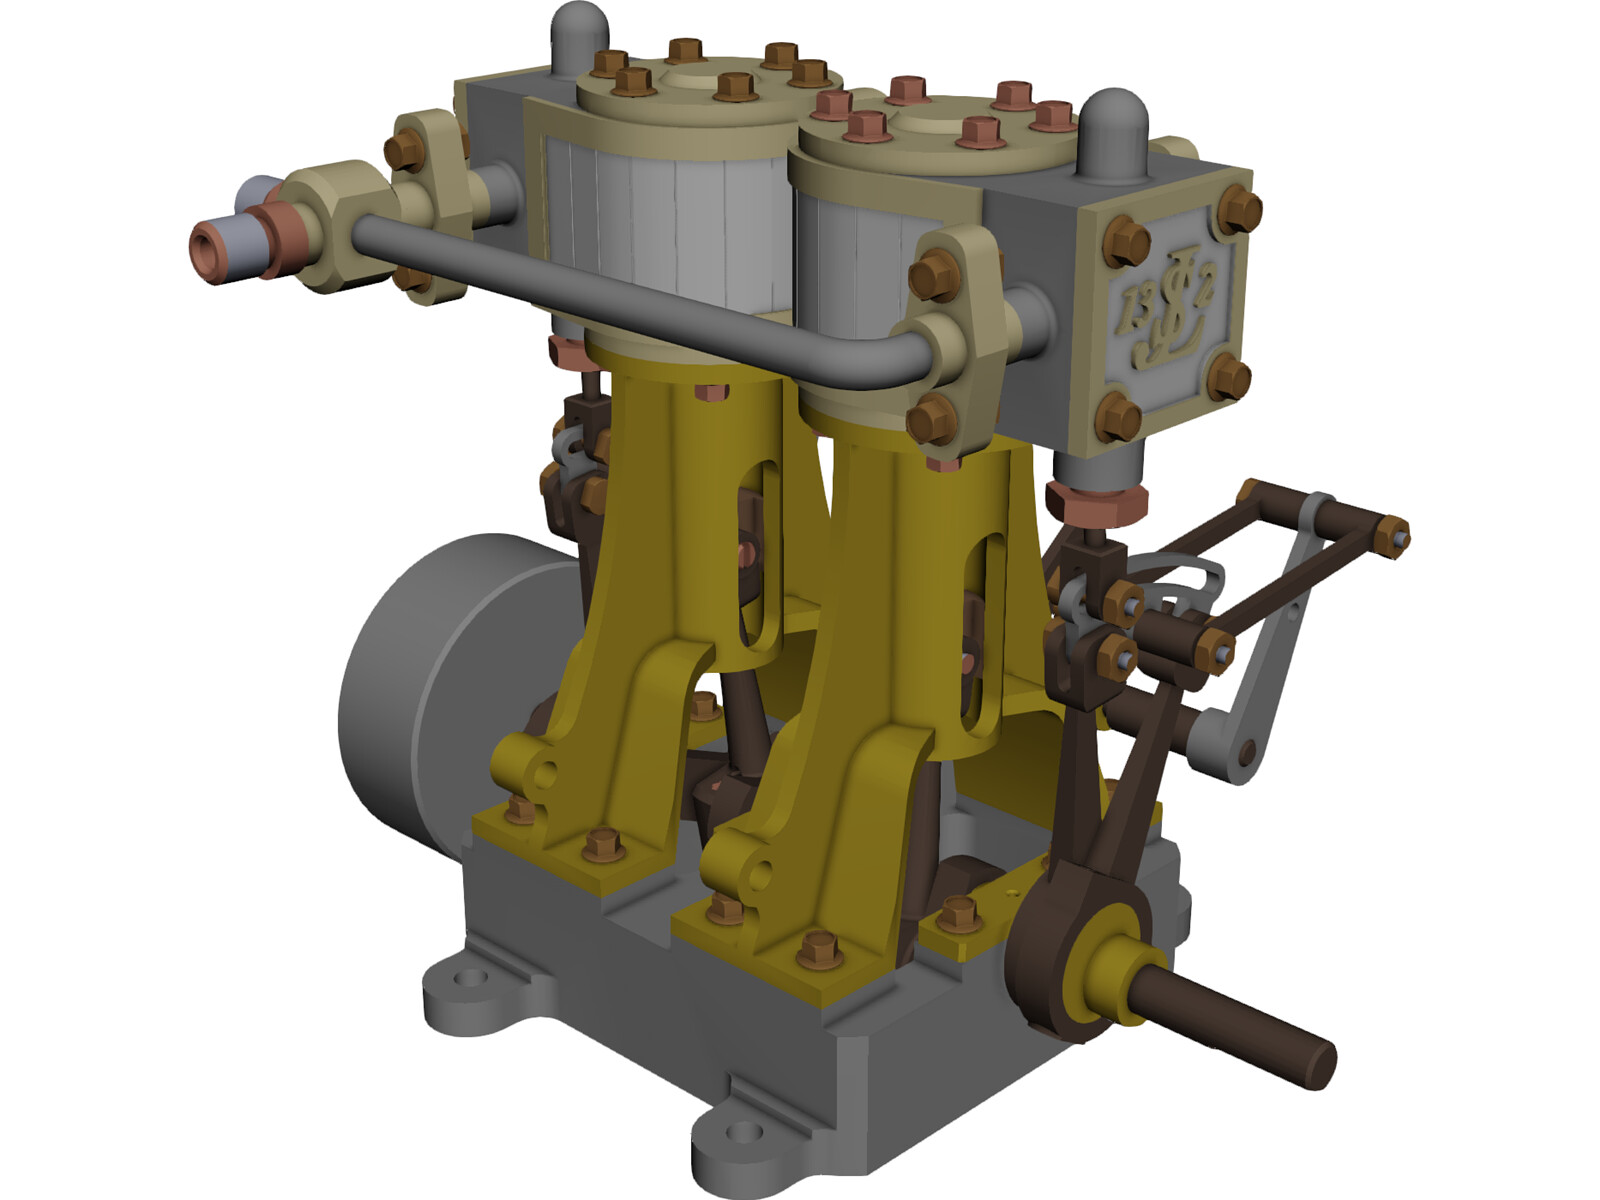 Steam Engine JLS-13-2 3D CAD Model